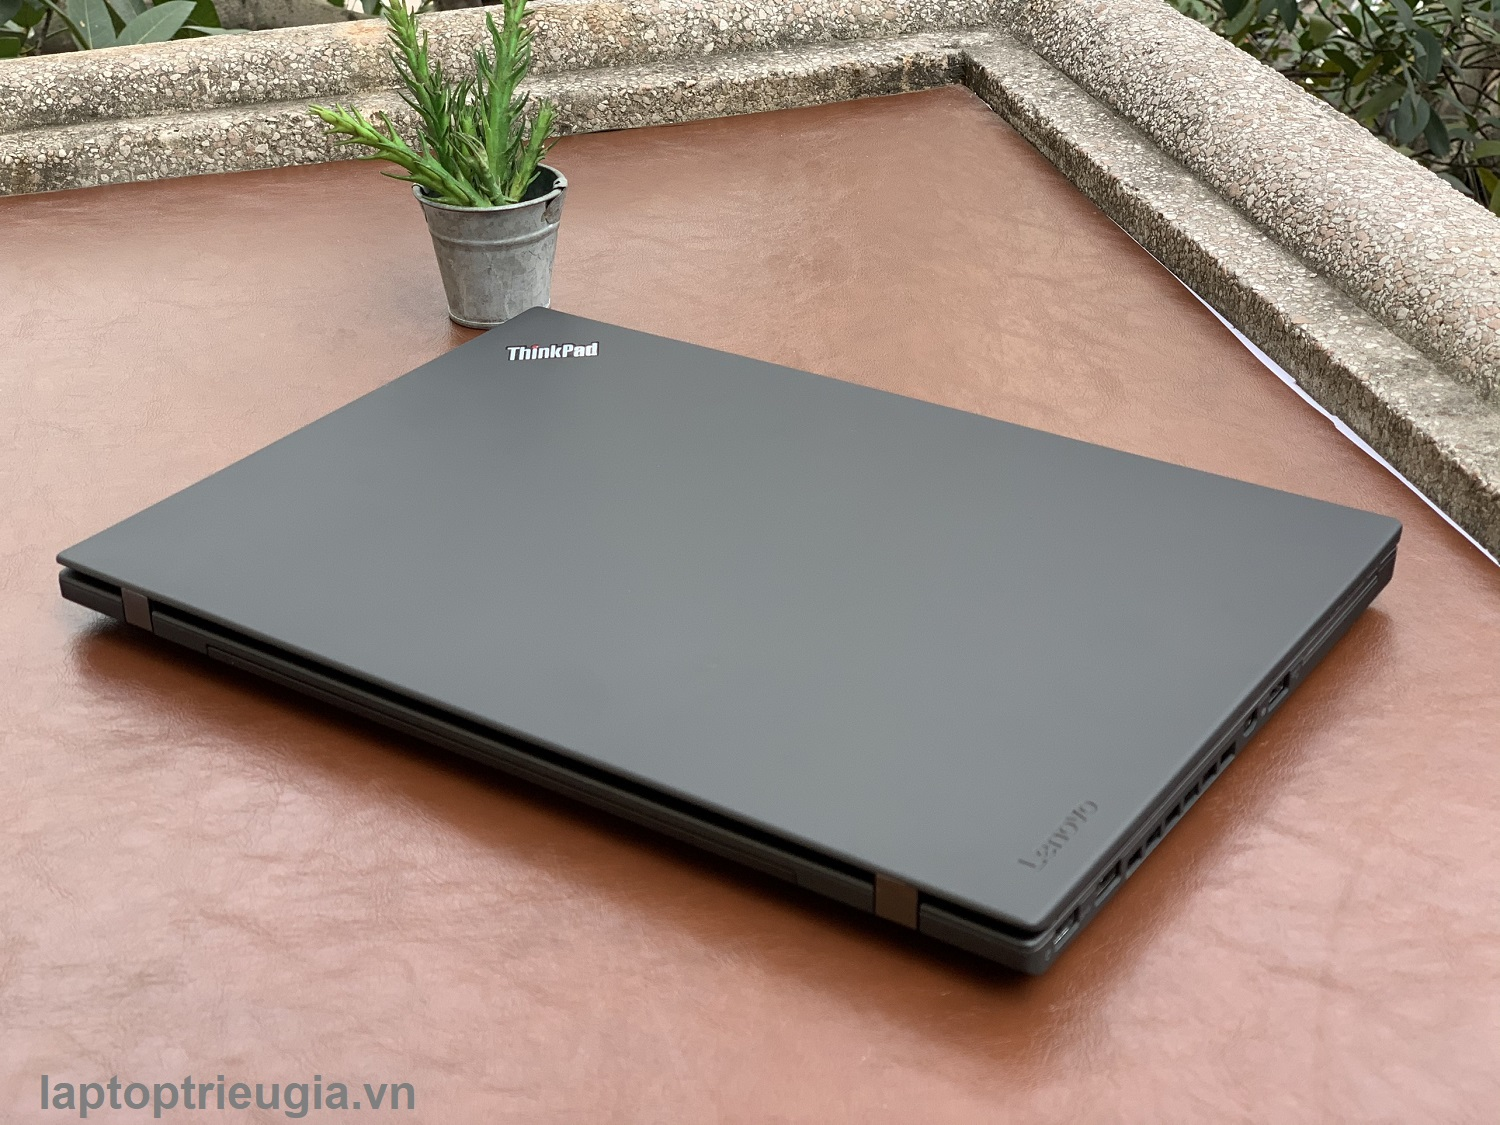 Lenovo Thinkpad T460 : i5-6300U | 8Gb | SSD240Gb | 14.0 FHD IPS